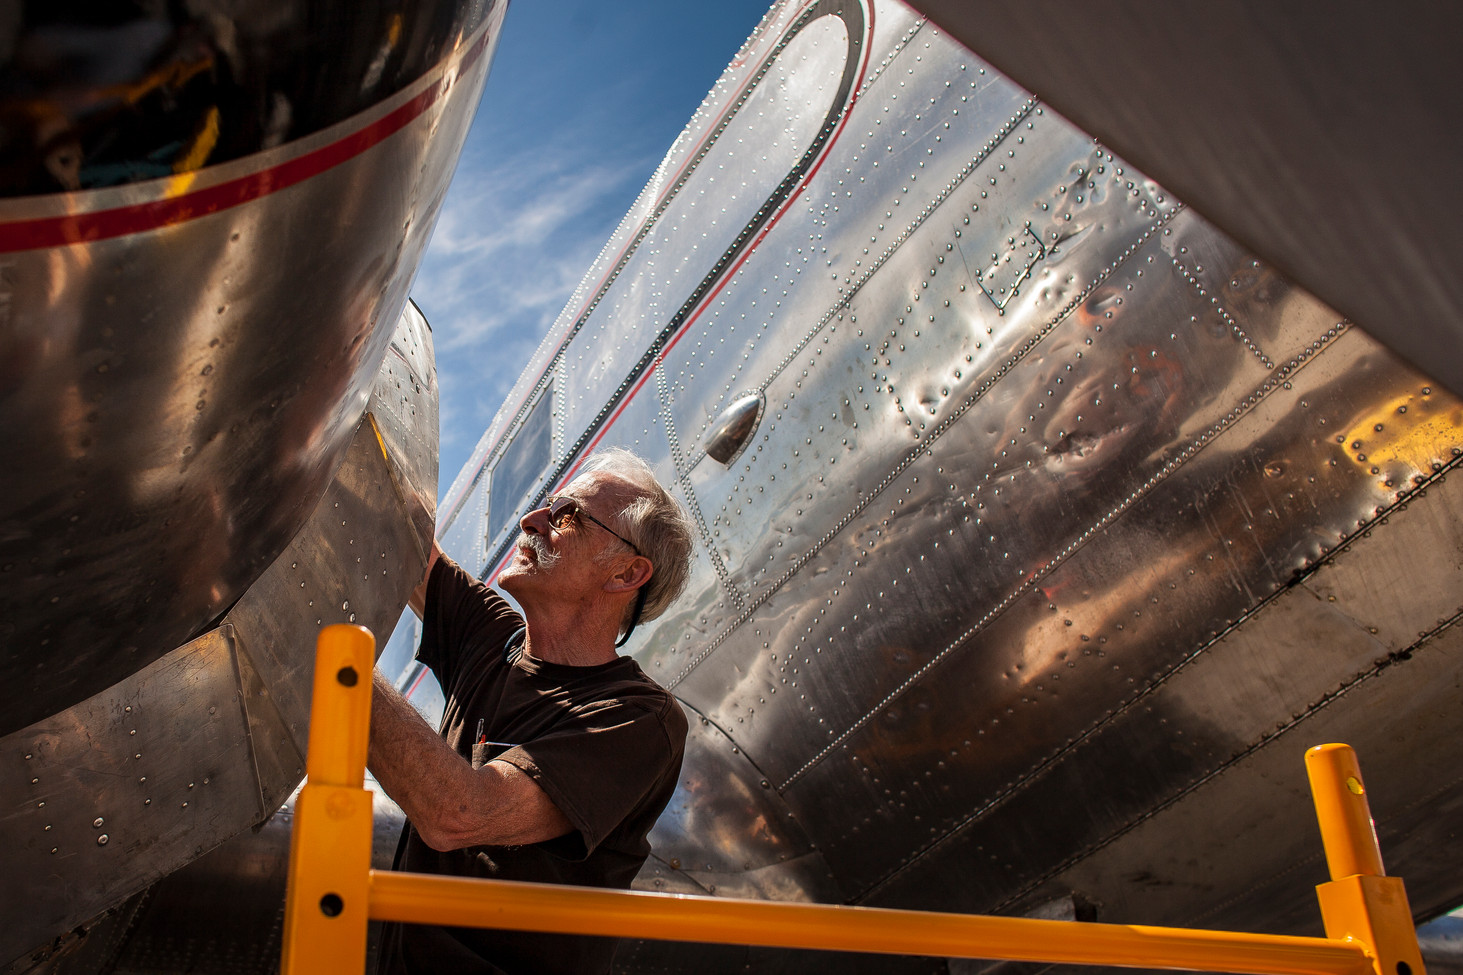 Jeff Whitesell, chief pilot of Miss Montana, adjusts her propeller governors after a test flight on May 12, 2019. The World War II era aircraft spent months being repaired at the Museum of Mountain Flying in Missoula before making the journey to Normandy to help celebrate the 75th anniversary of D-day.